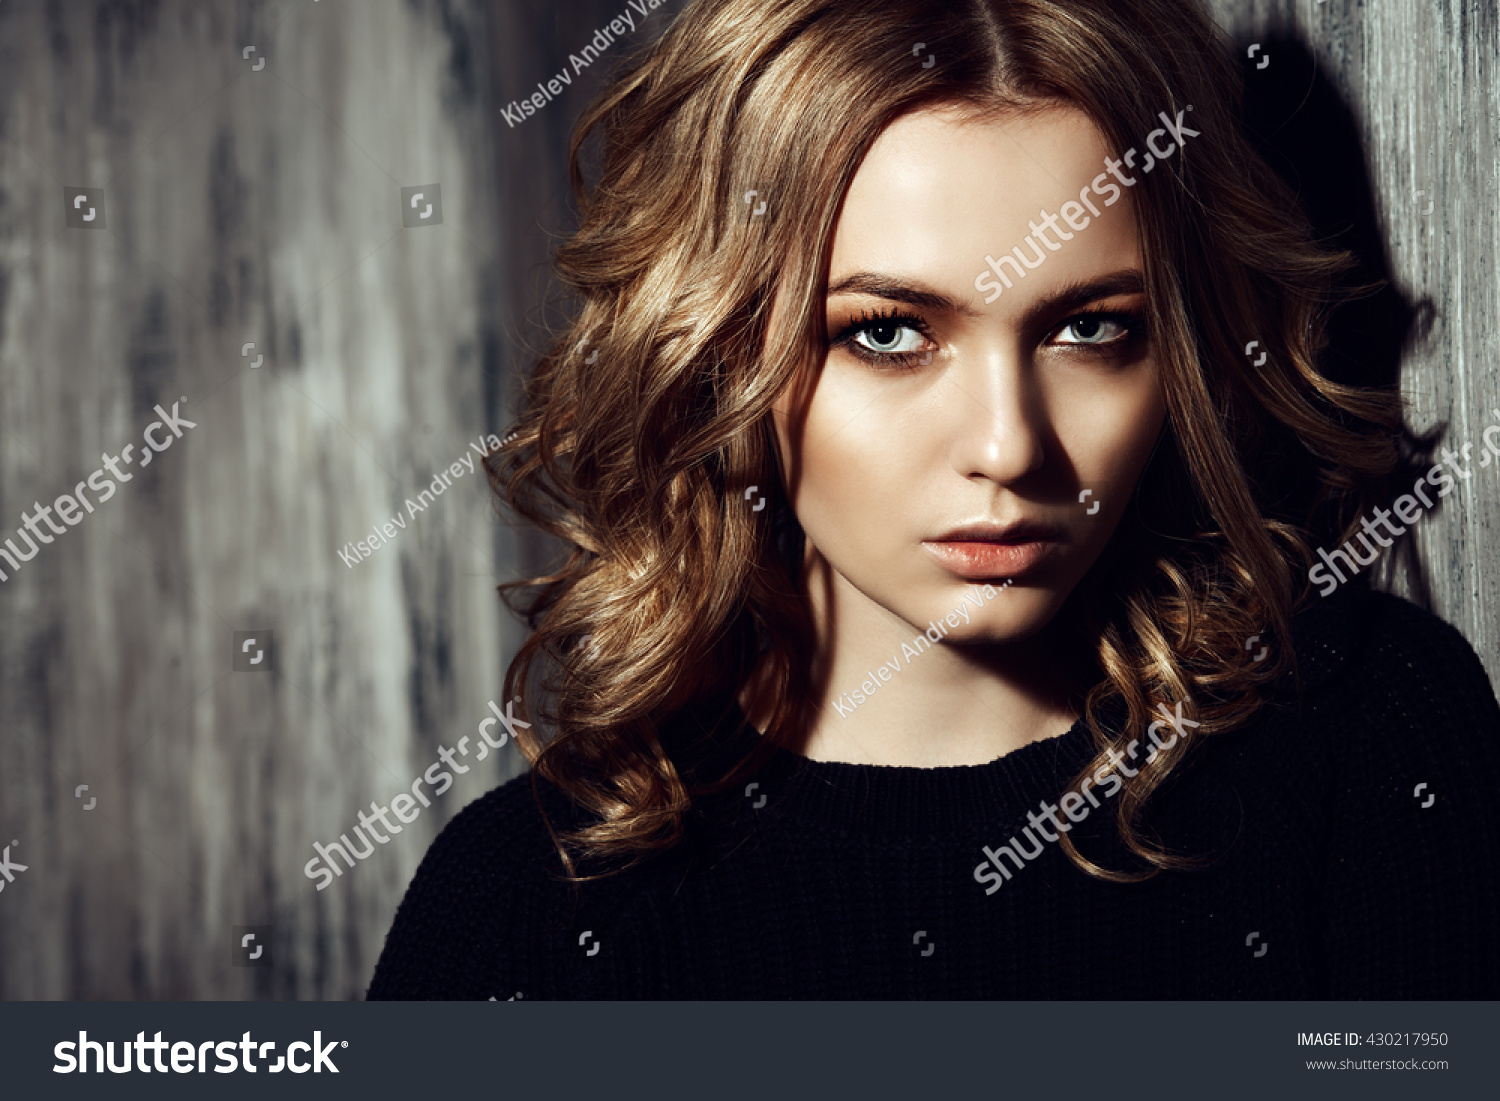 Casual Teen Girl Standing By Grunge Stock Photo Edit Now 430217950